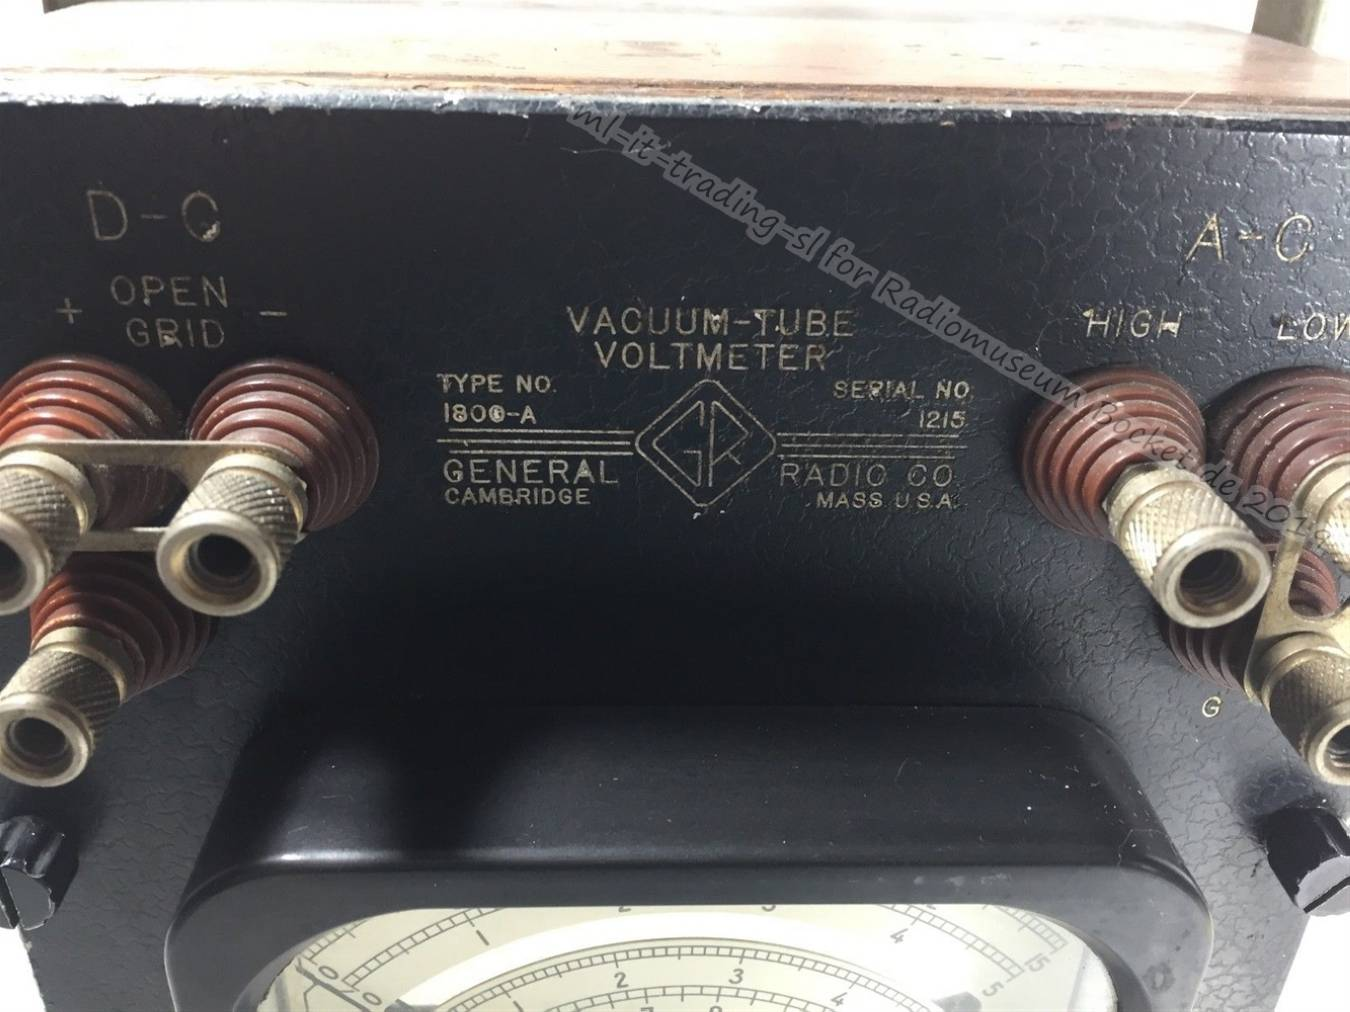 General Radio VACUUM TUBE VOLTMETER 1800-A ml-it-trading-sl 2019 3.jpg